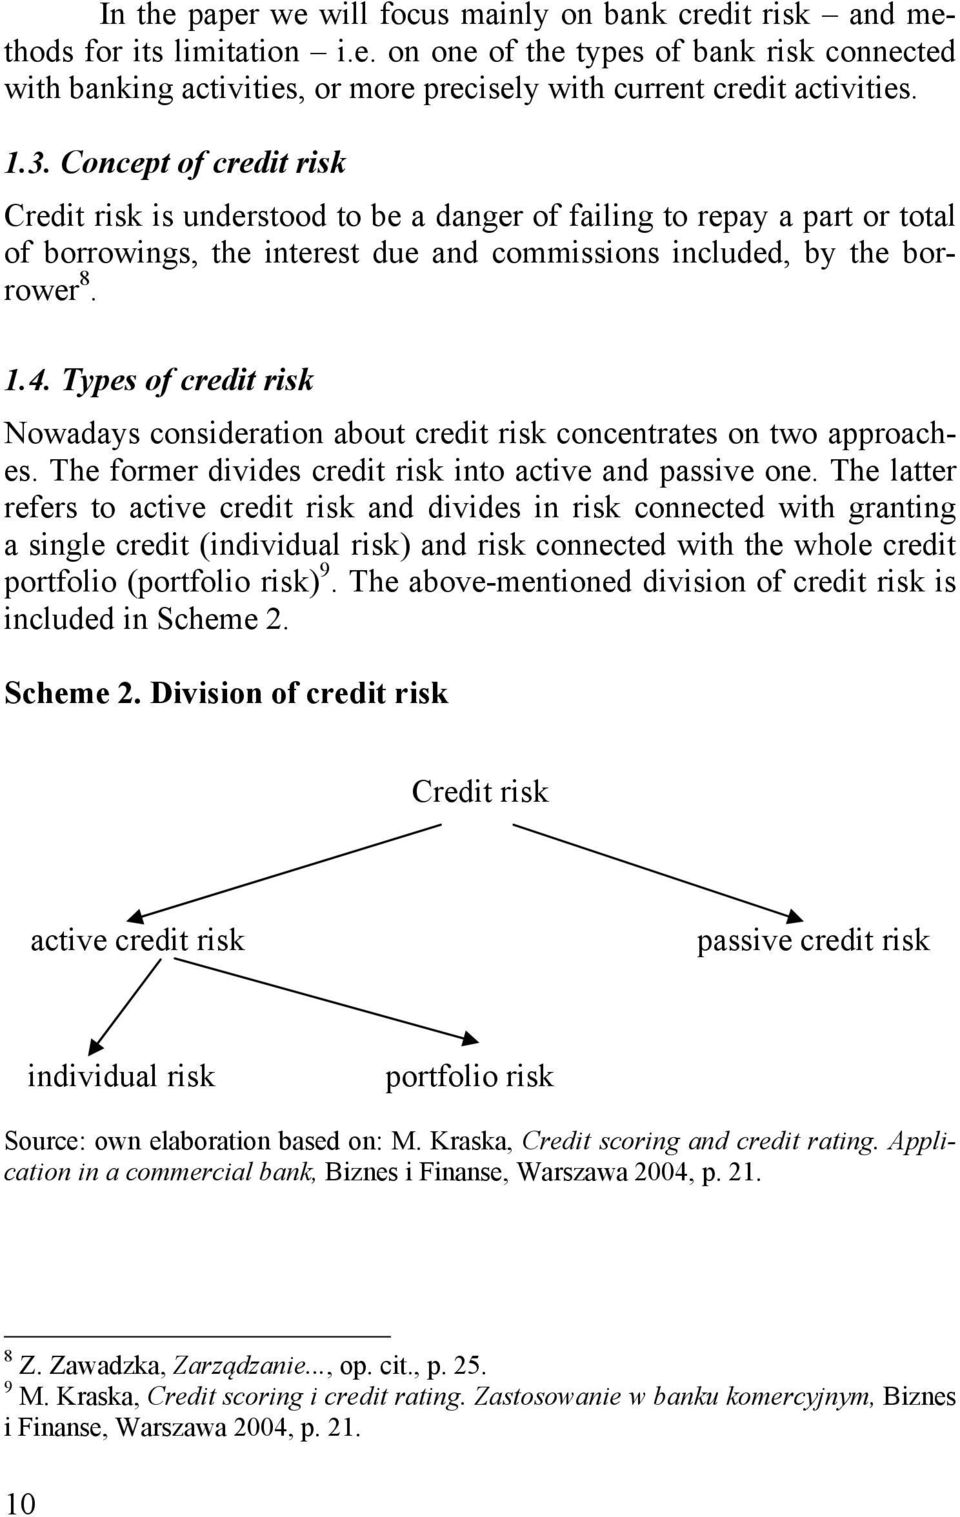 Types of credit risk Nowadays consideration about credit risk concentrates on two approaches. The former divides credit risk into active and passive one.